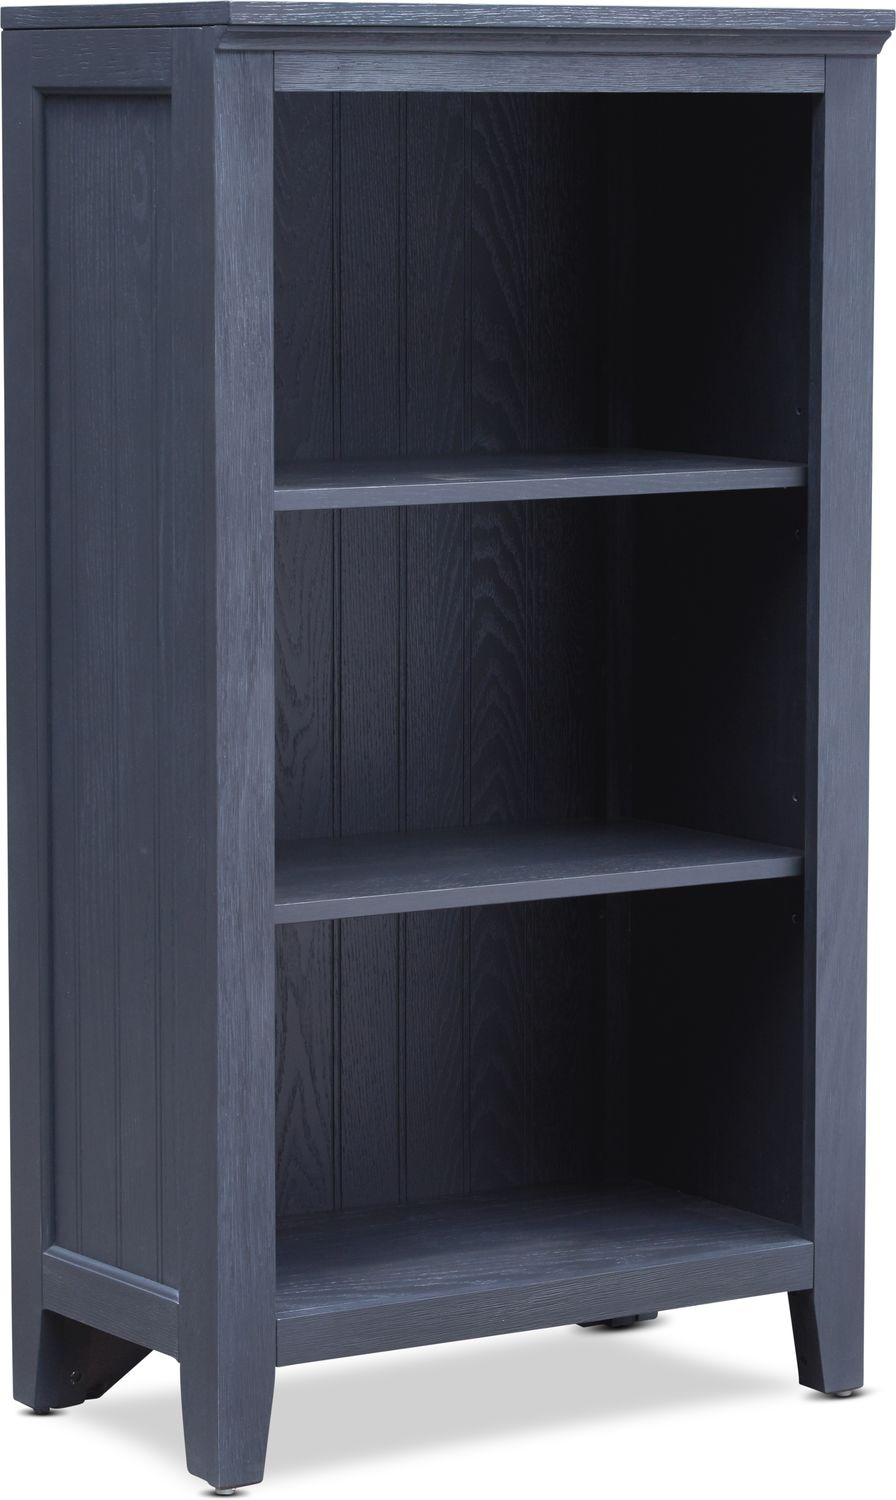 Kids Furniture - Sidney Bookcase